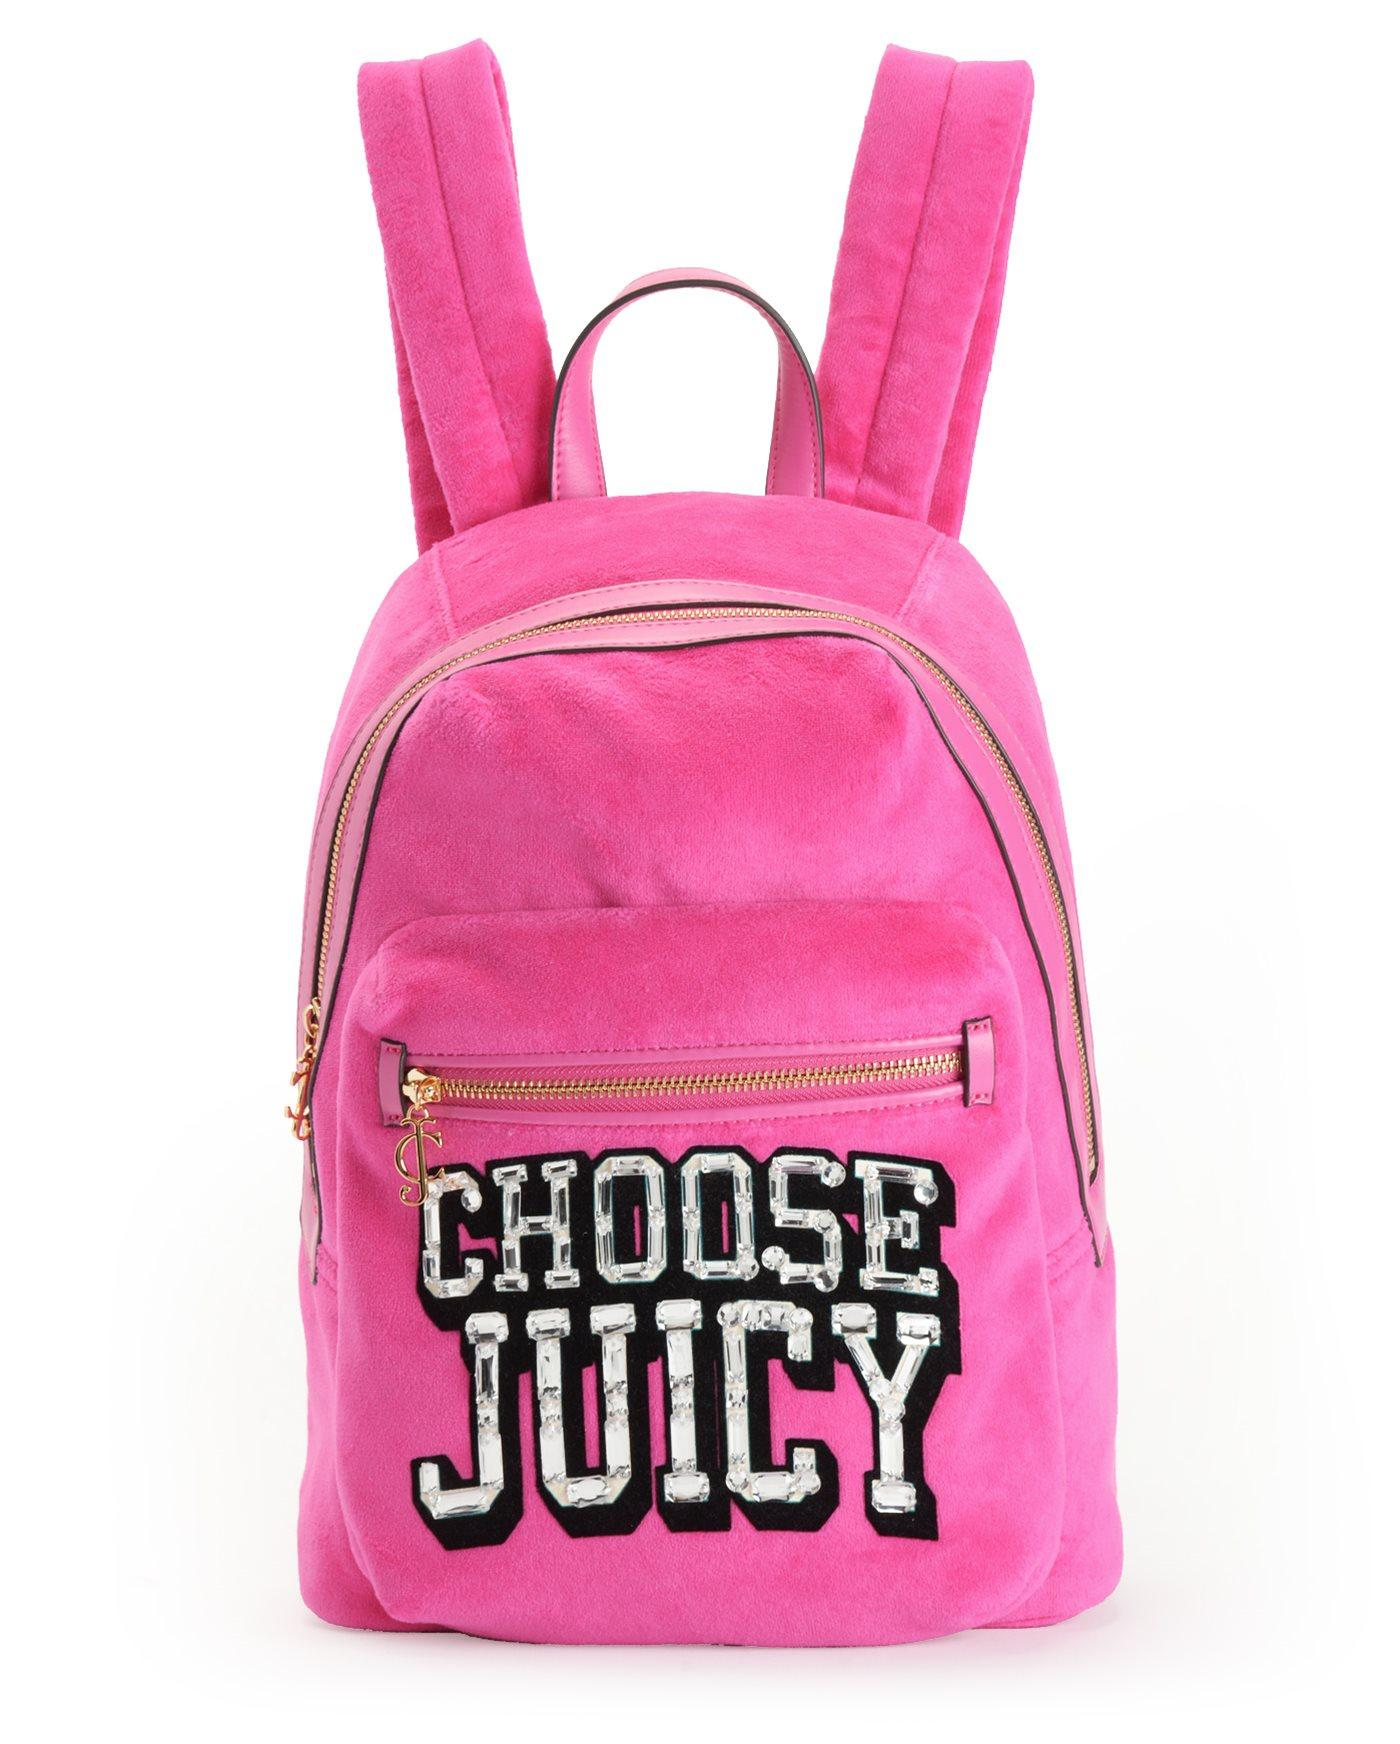 Extra 60% Off Handbags @ Juicy Couture